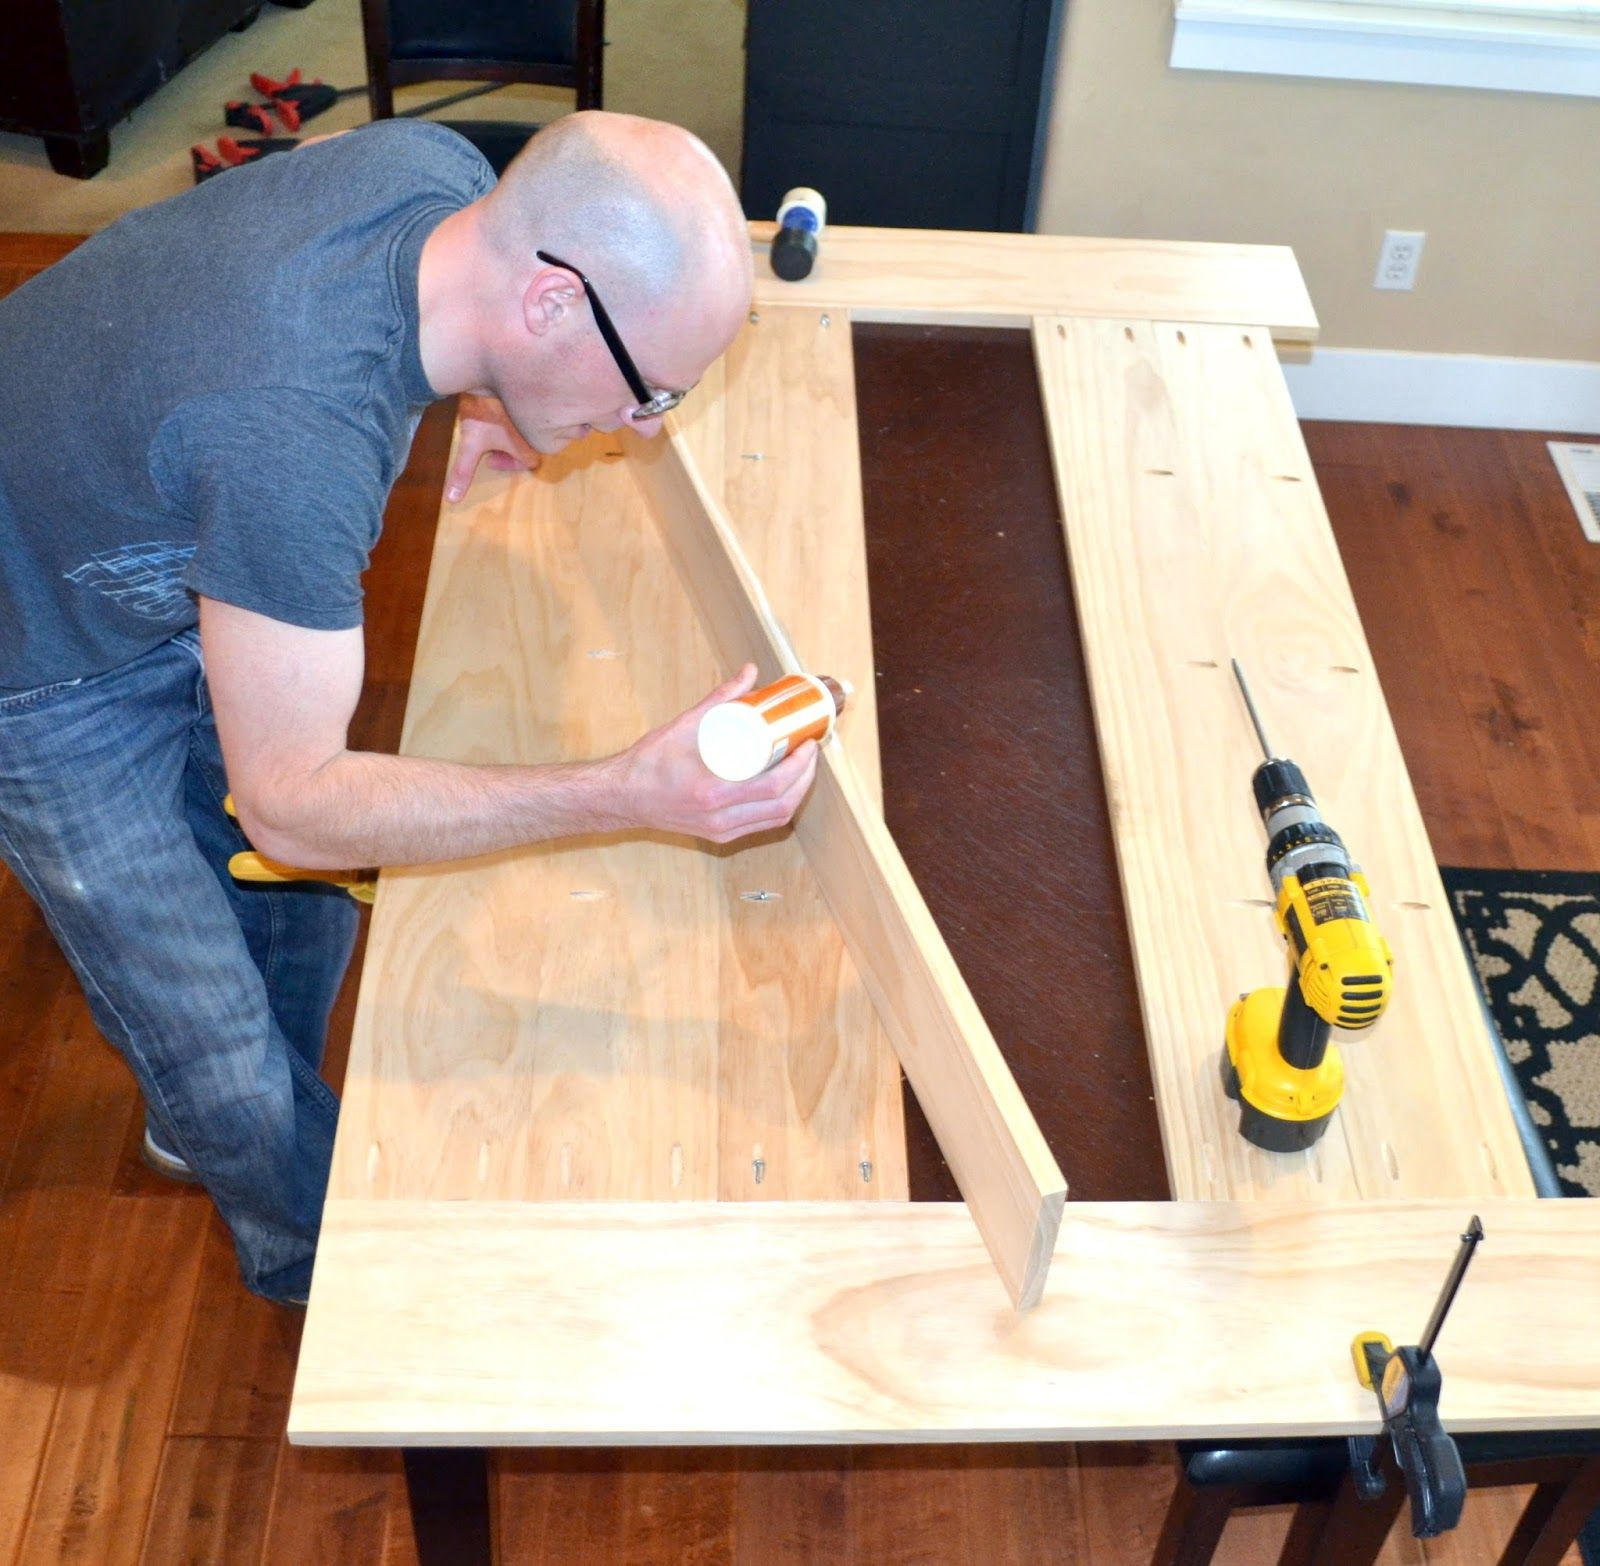 Design Diy Tabletop Ideas easy diy planked table top cover for your existing farm table